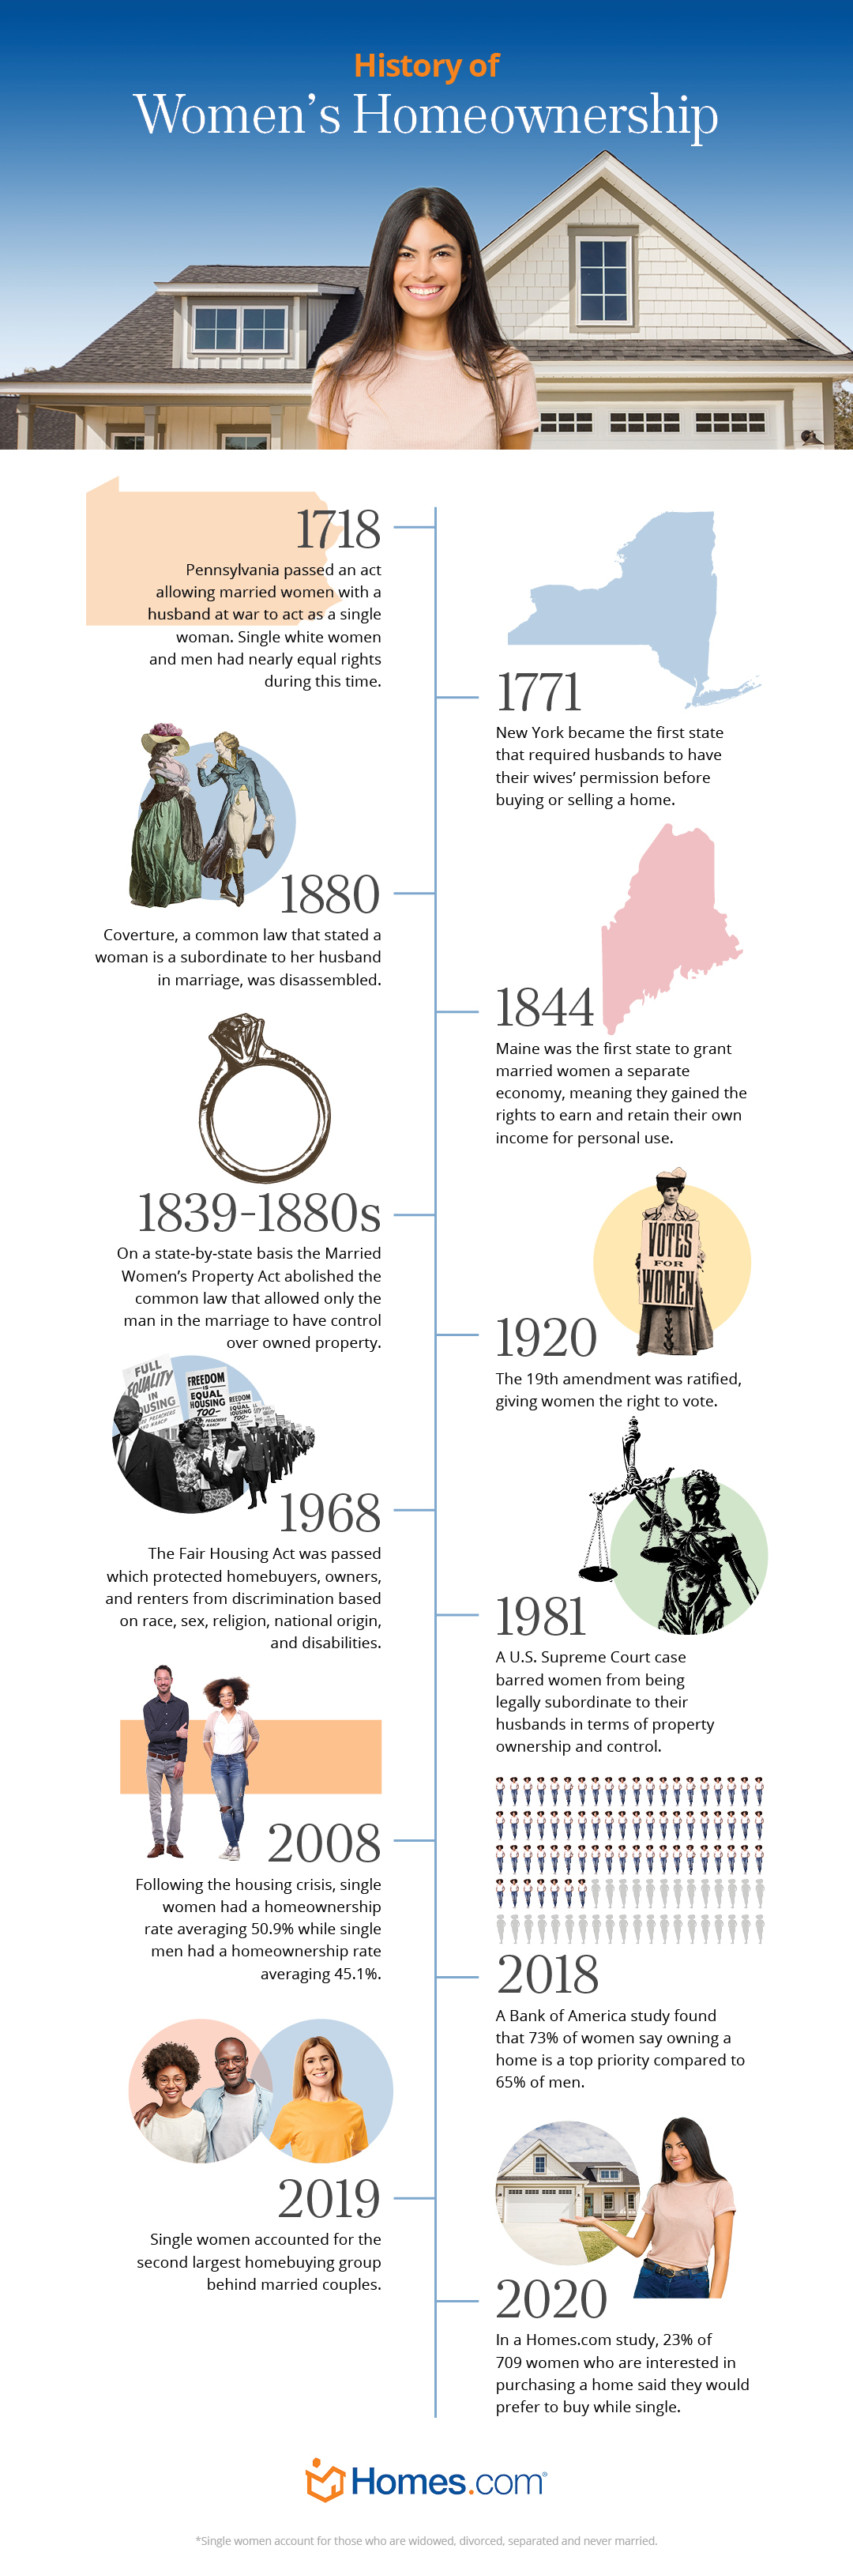 history of women's homeownership timeline